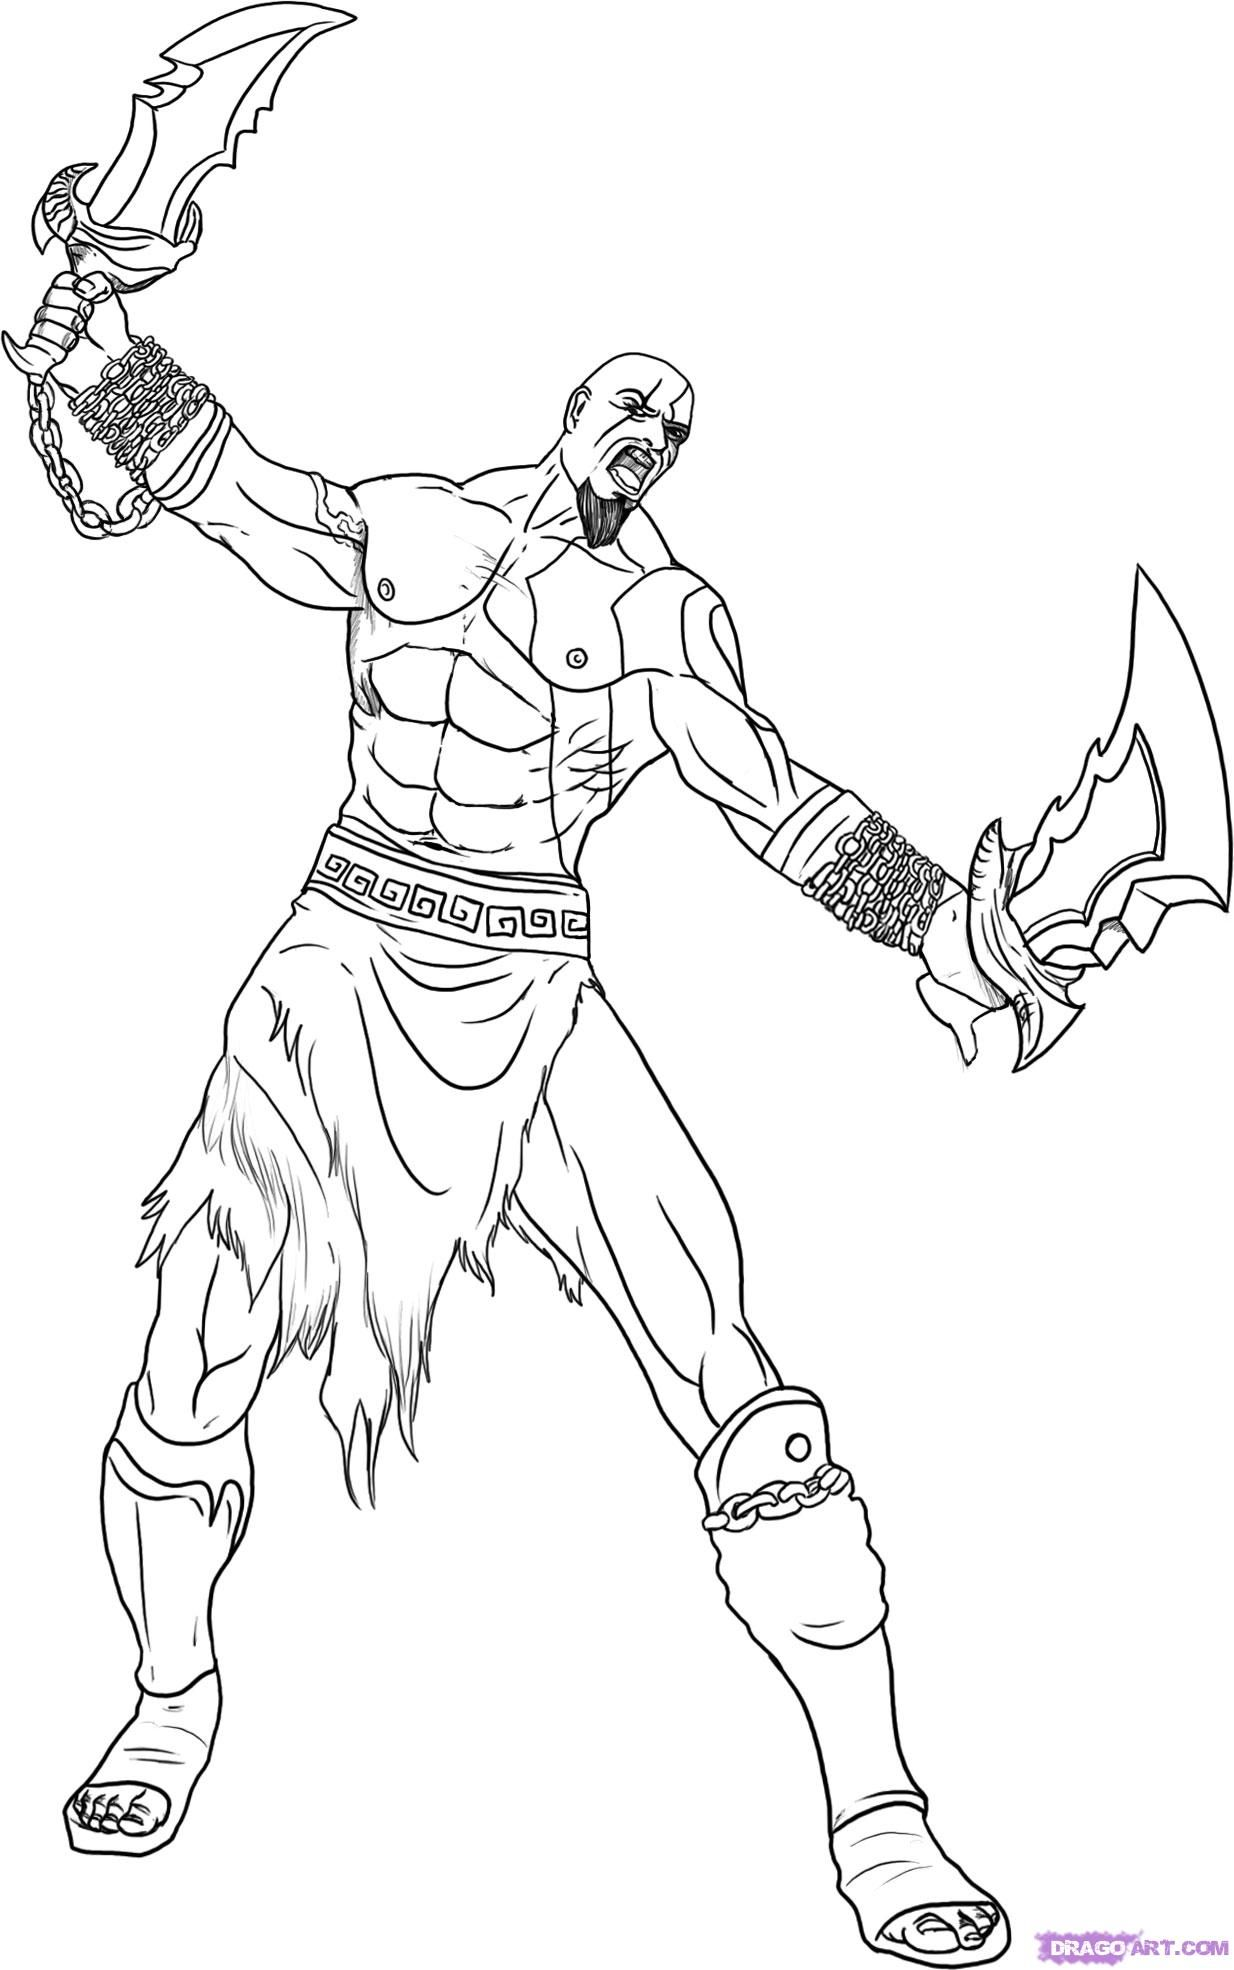 Amazing Kratos God Of War Coloring Pages Dibujos Dibujos